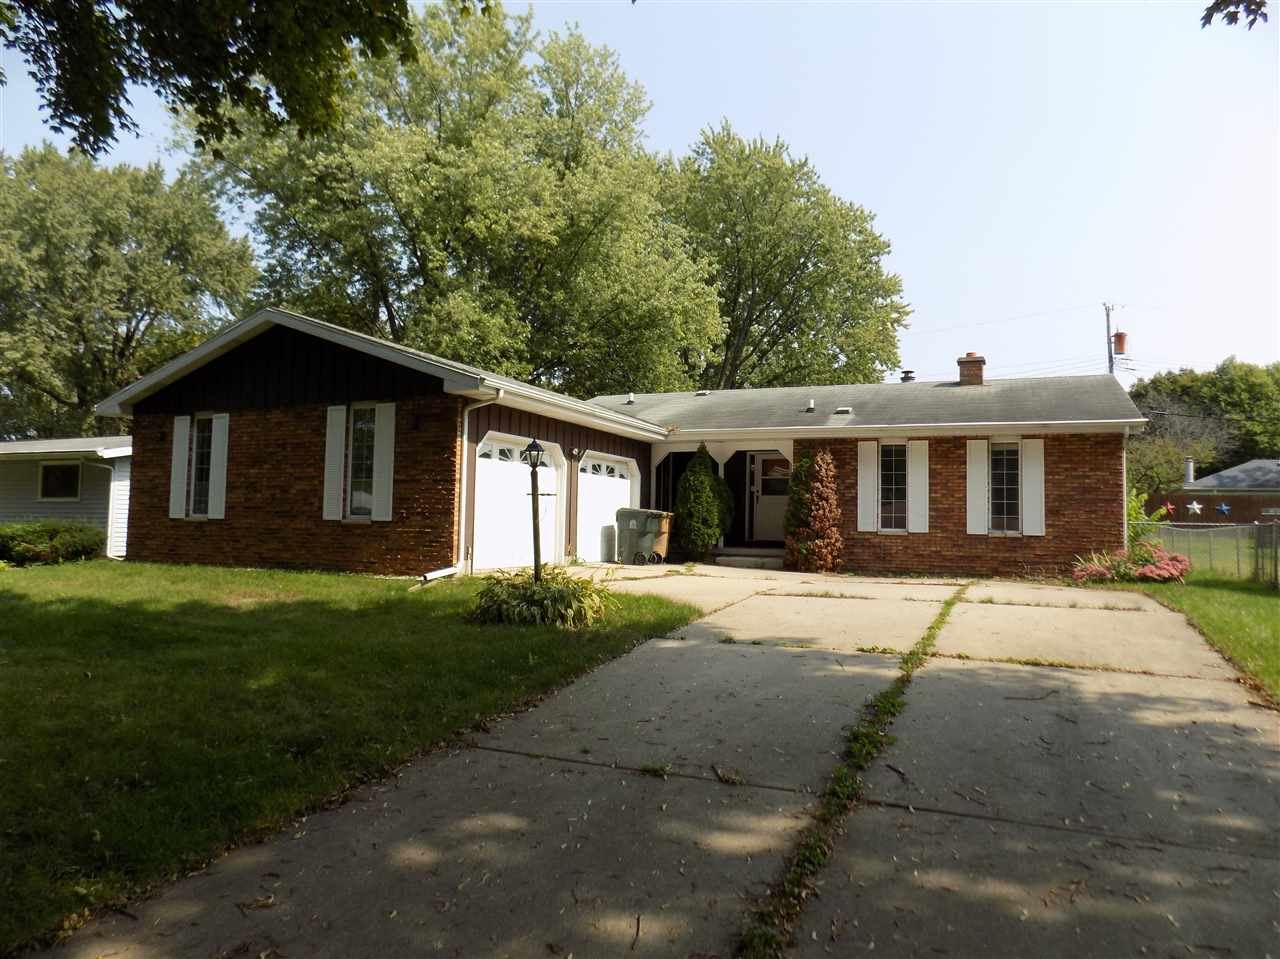 721 Redland Dr, Madison, WI 53714 - #: 1894193